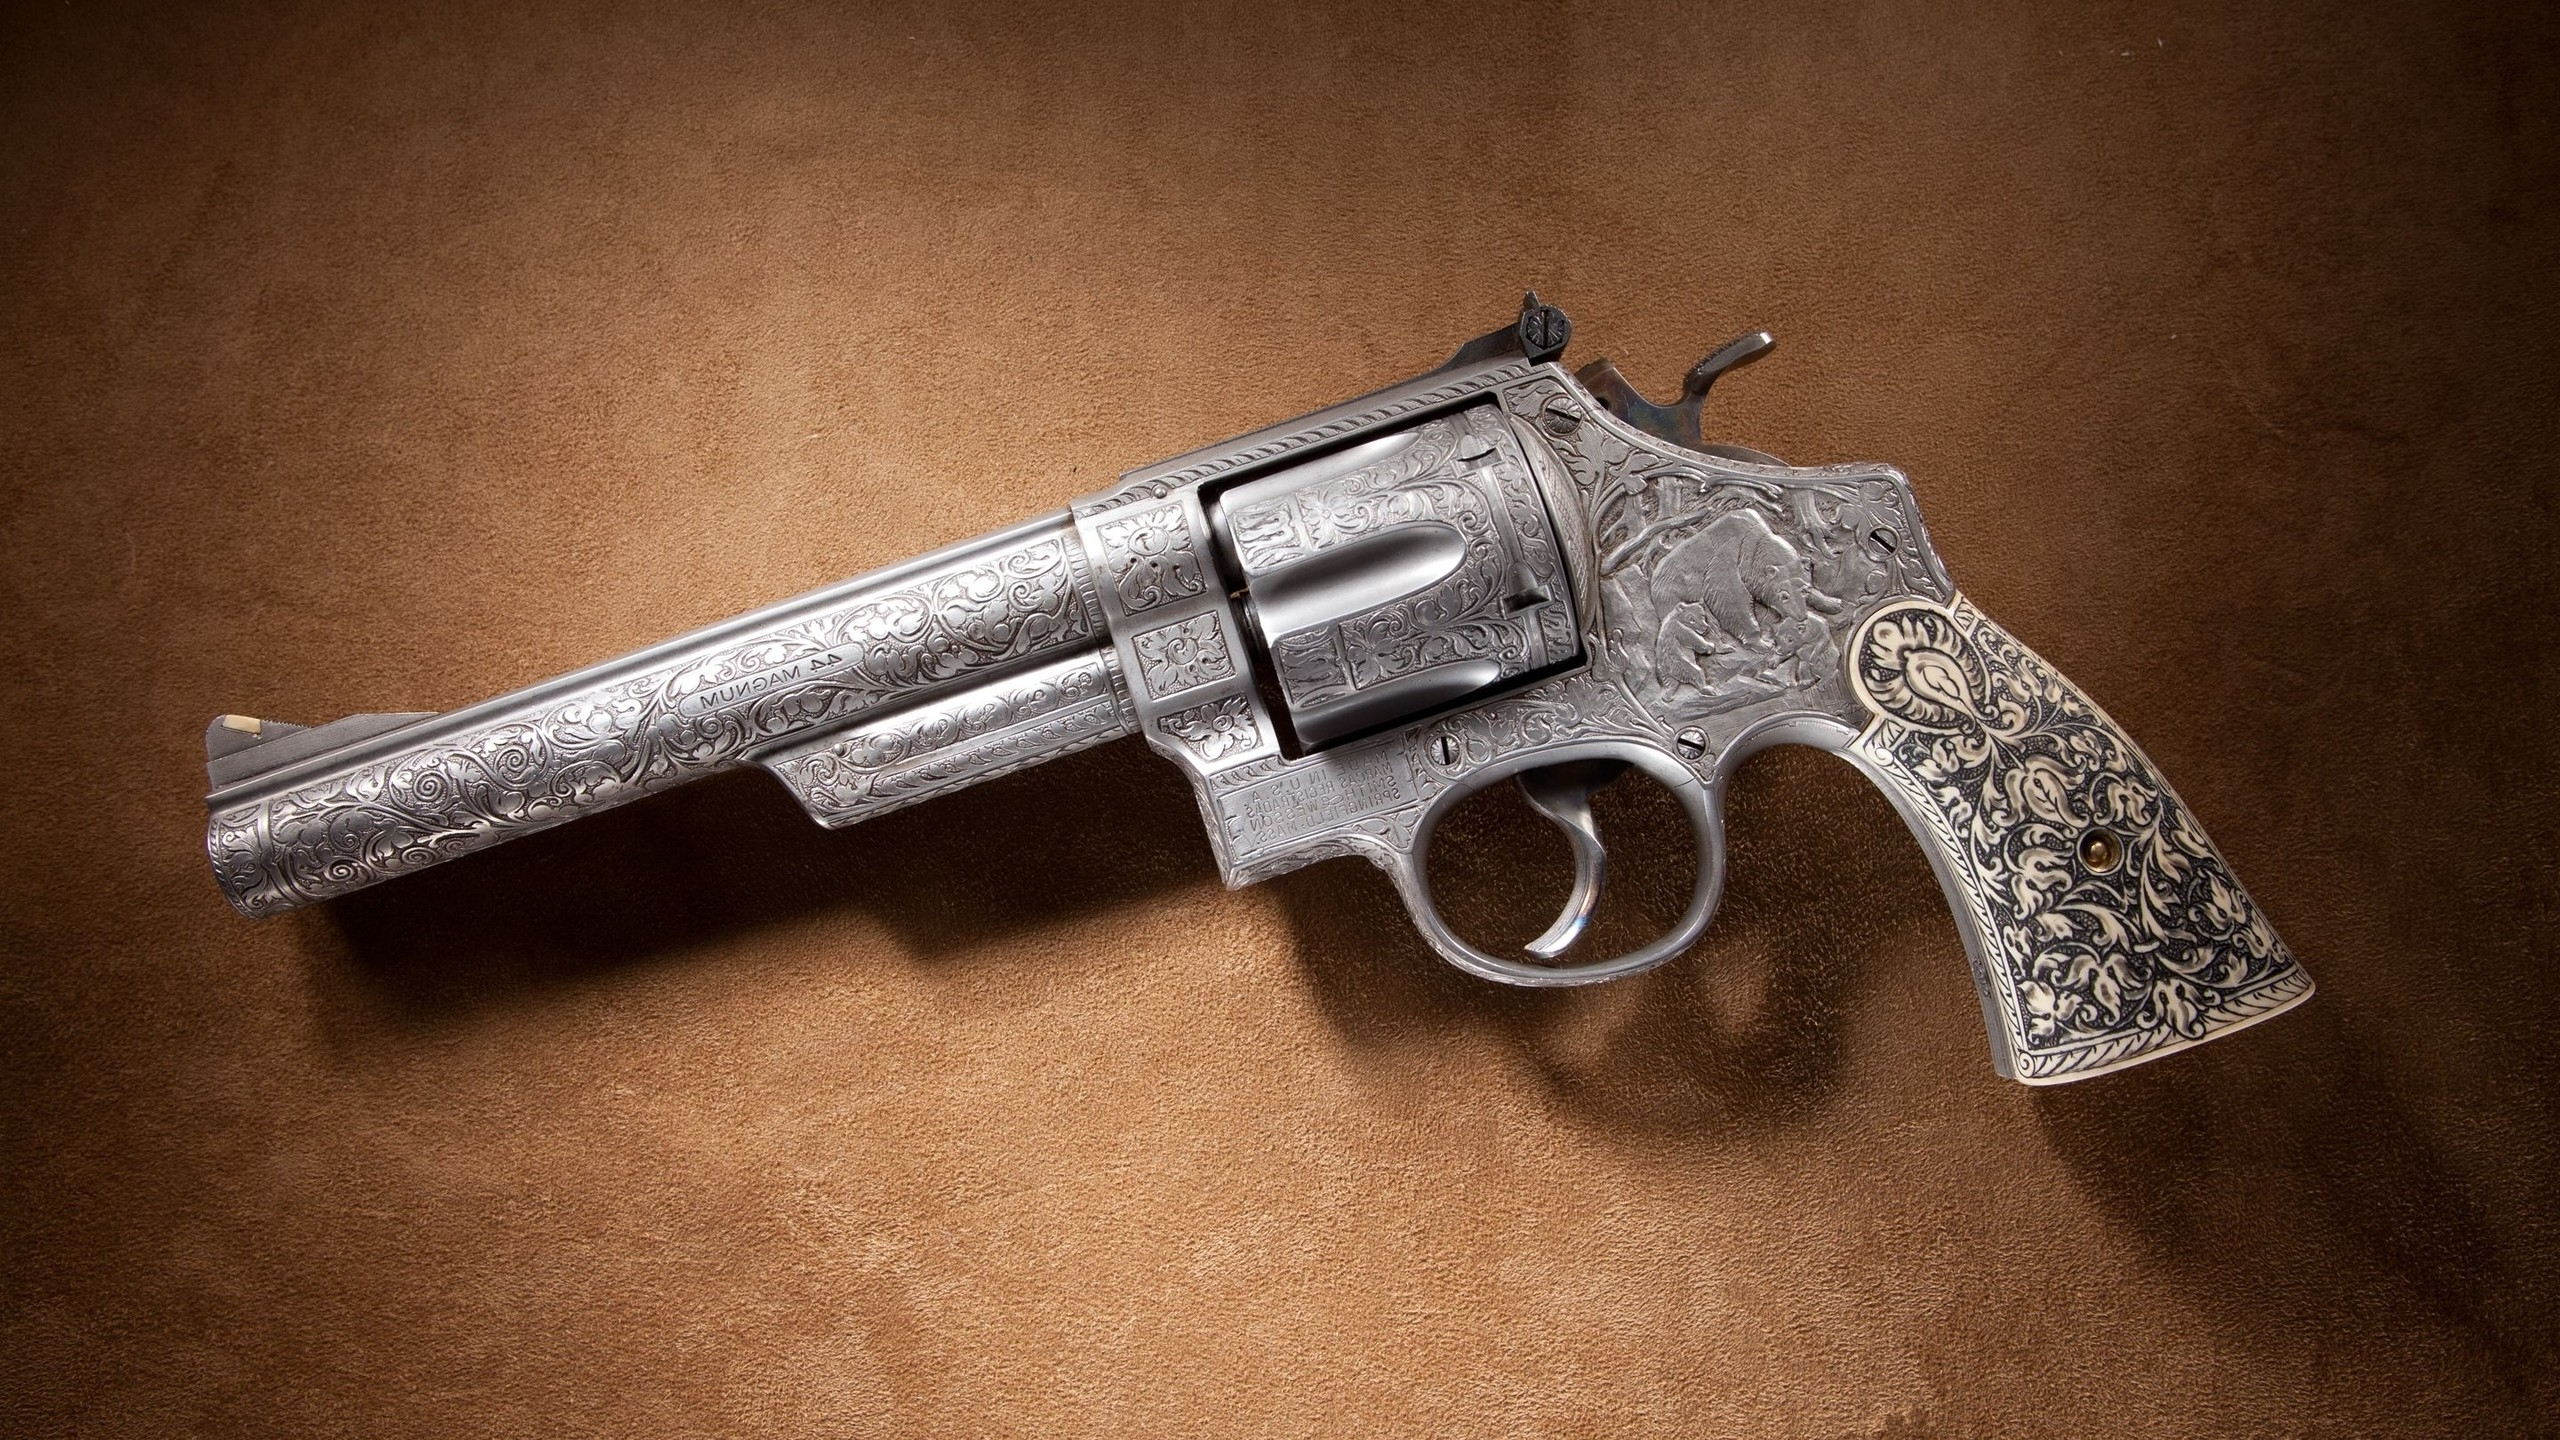 Smith and Wesson Pistol Gun Wallpapers HD 2560x1440